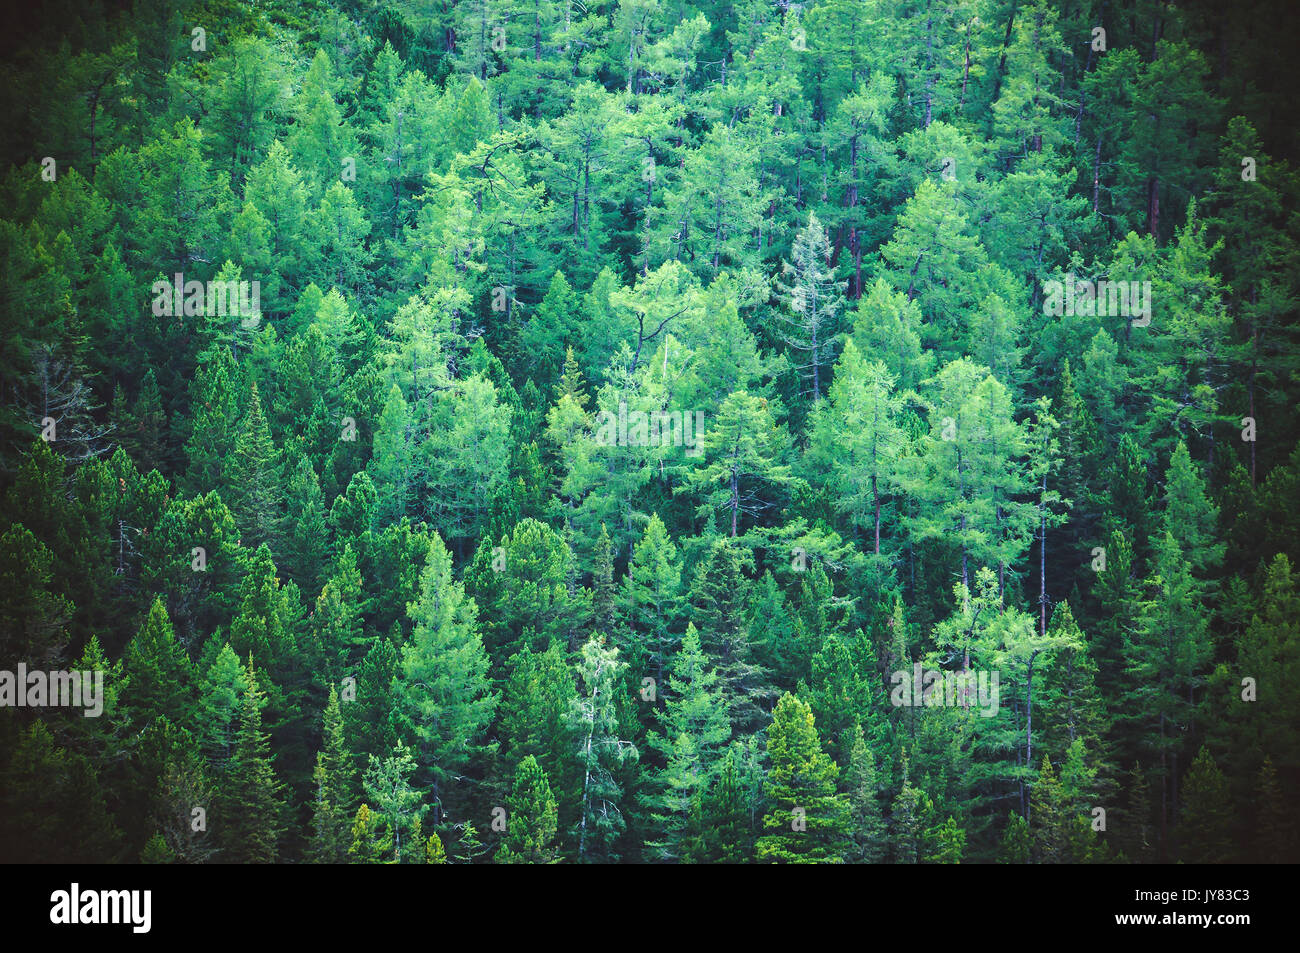 Fir forest view from above - beautiful nature of forest. Healthy green trees in a forest of old spruce, fir and pine trees in wilderness of a national - Stock Image